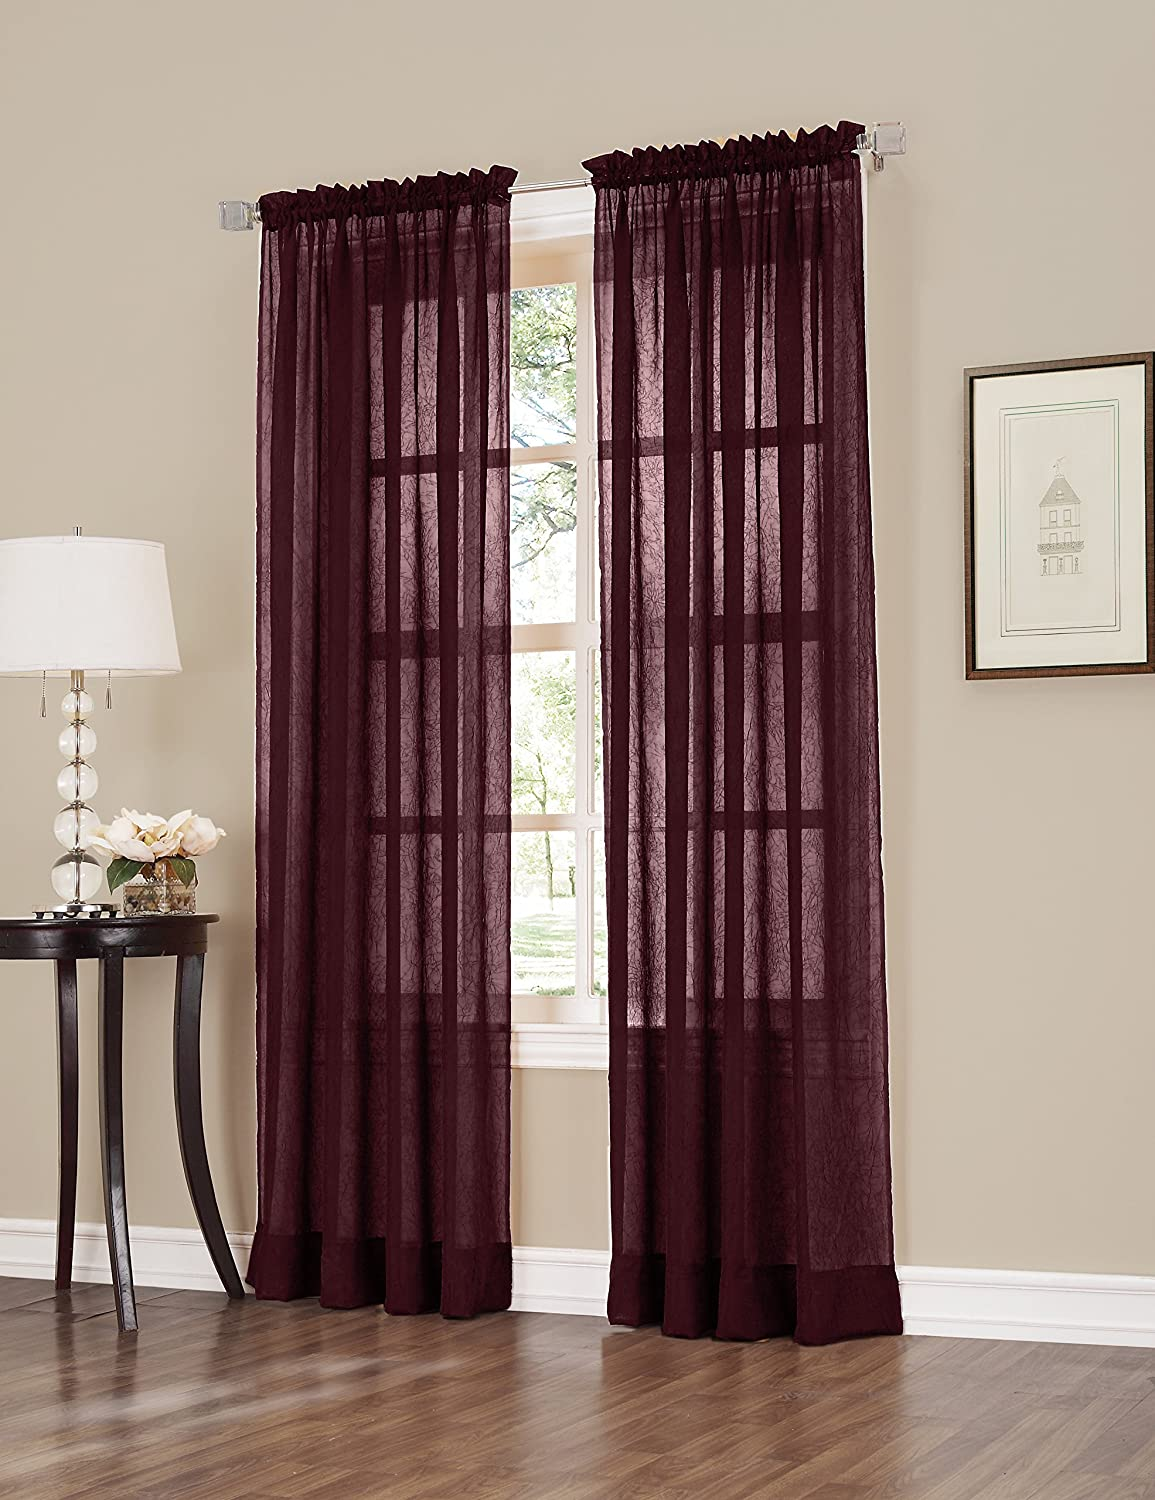 Erica Crush Sheer Voile Curtain Panel, 51-Inch by 63-Inch, Burgundy